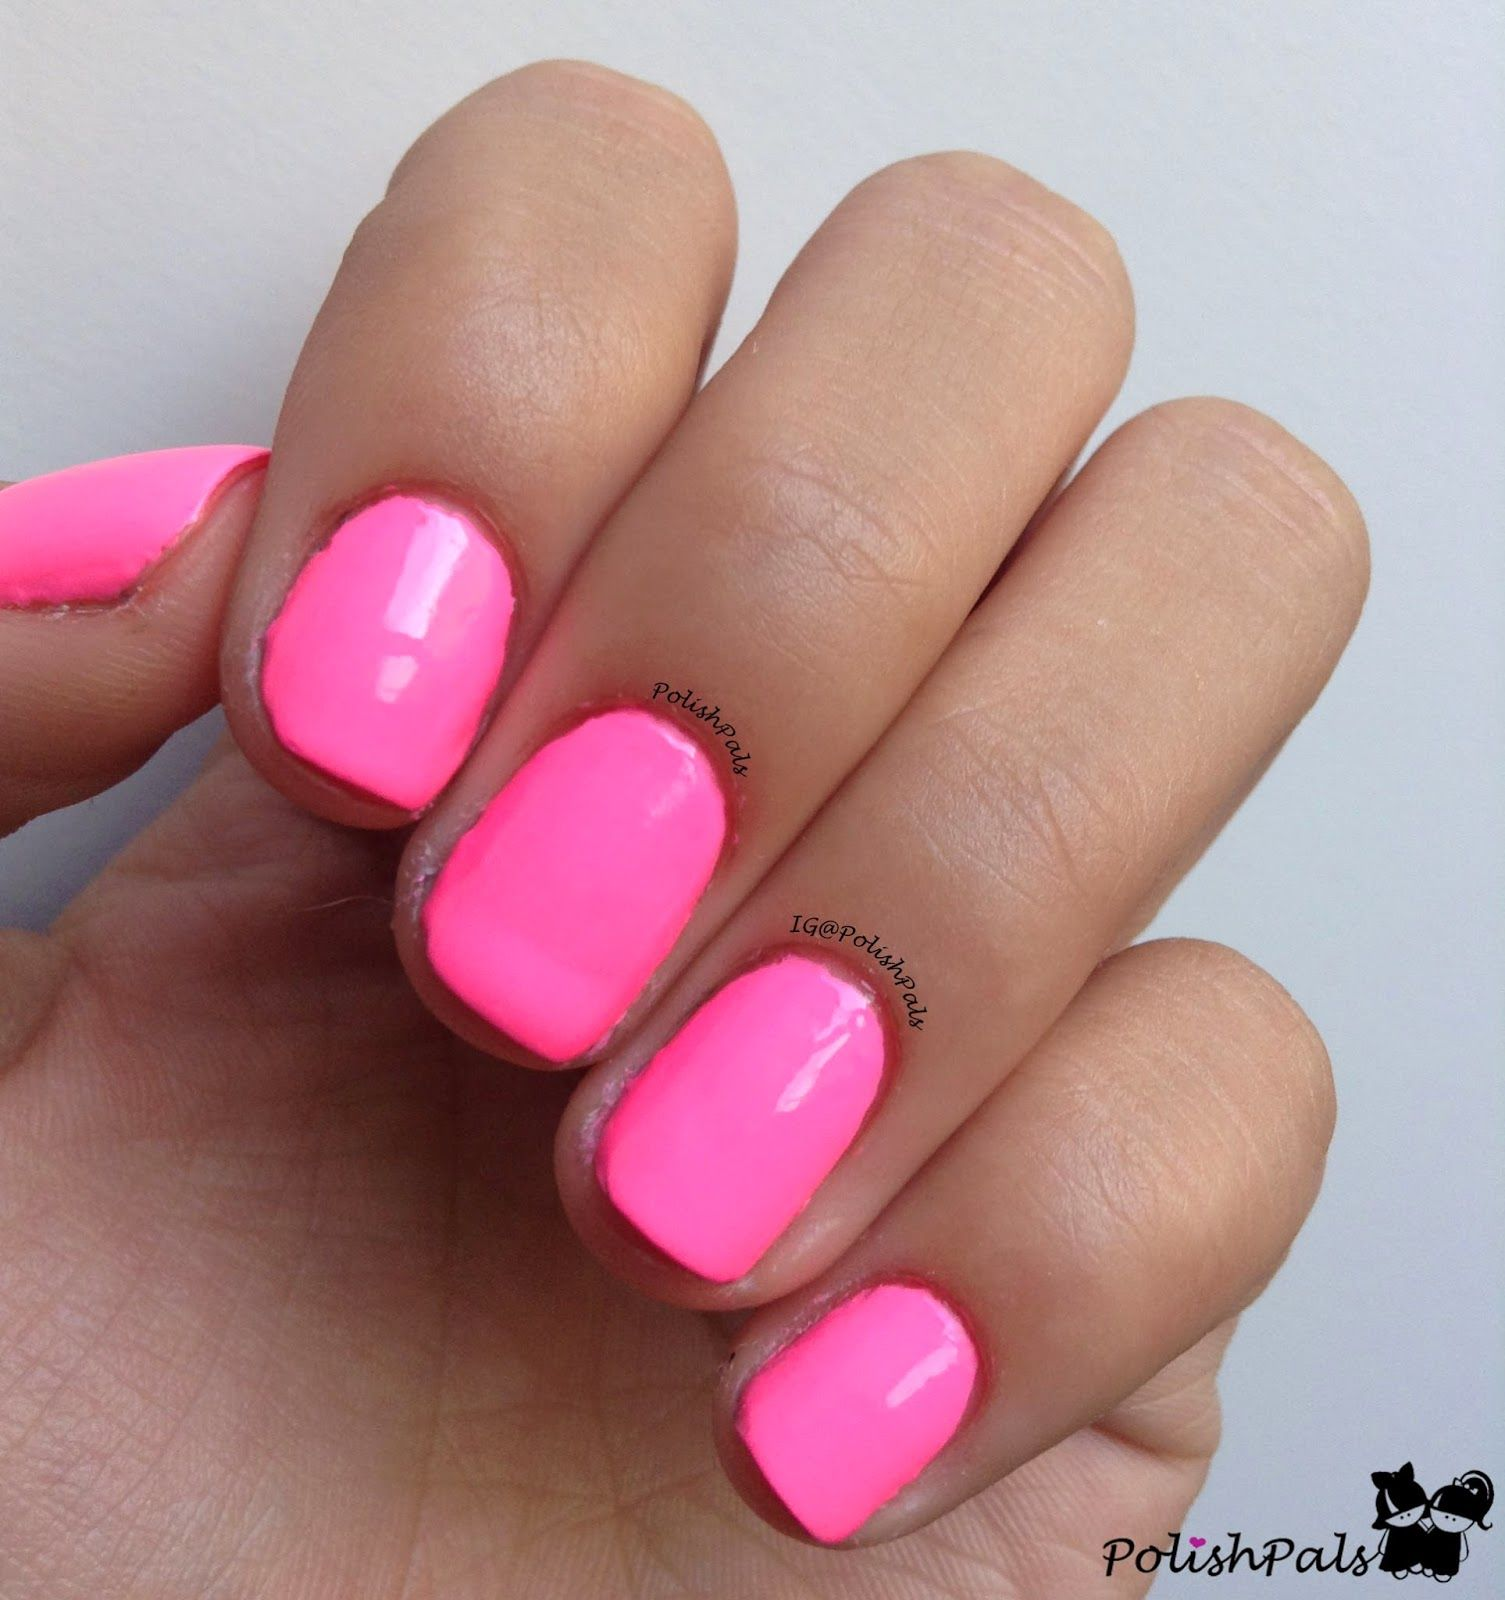 So I Decided It Was Time To Swatch My New Hot Pink Nail